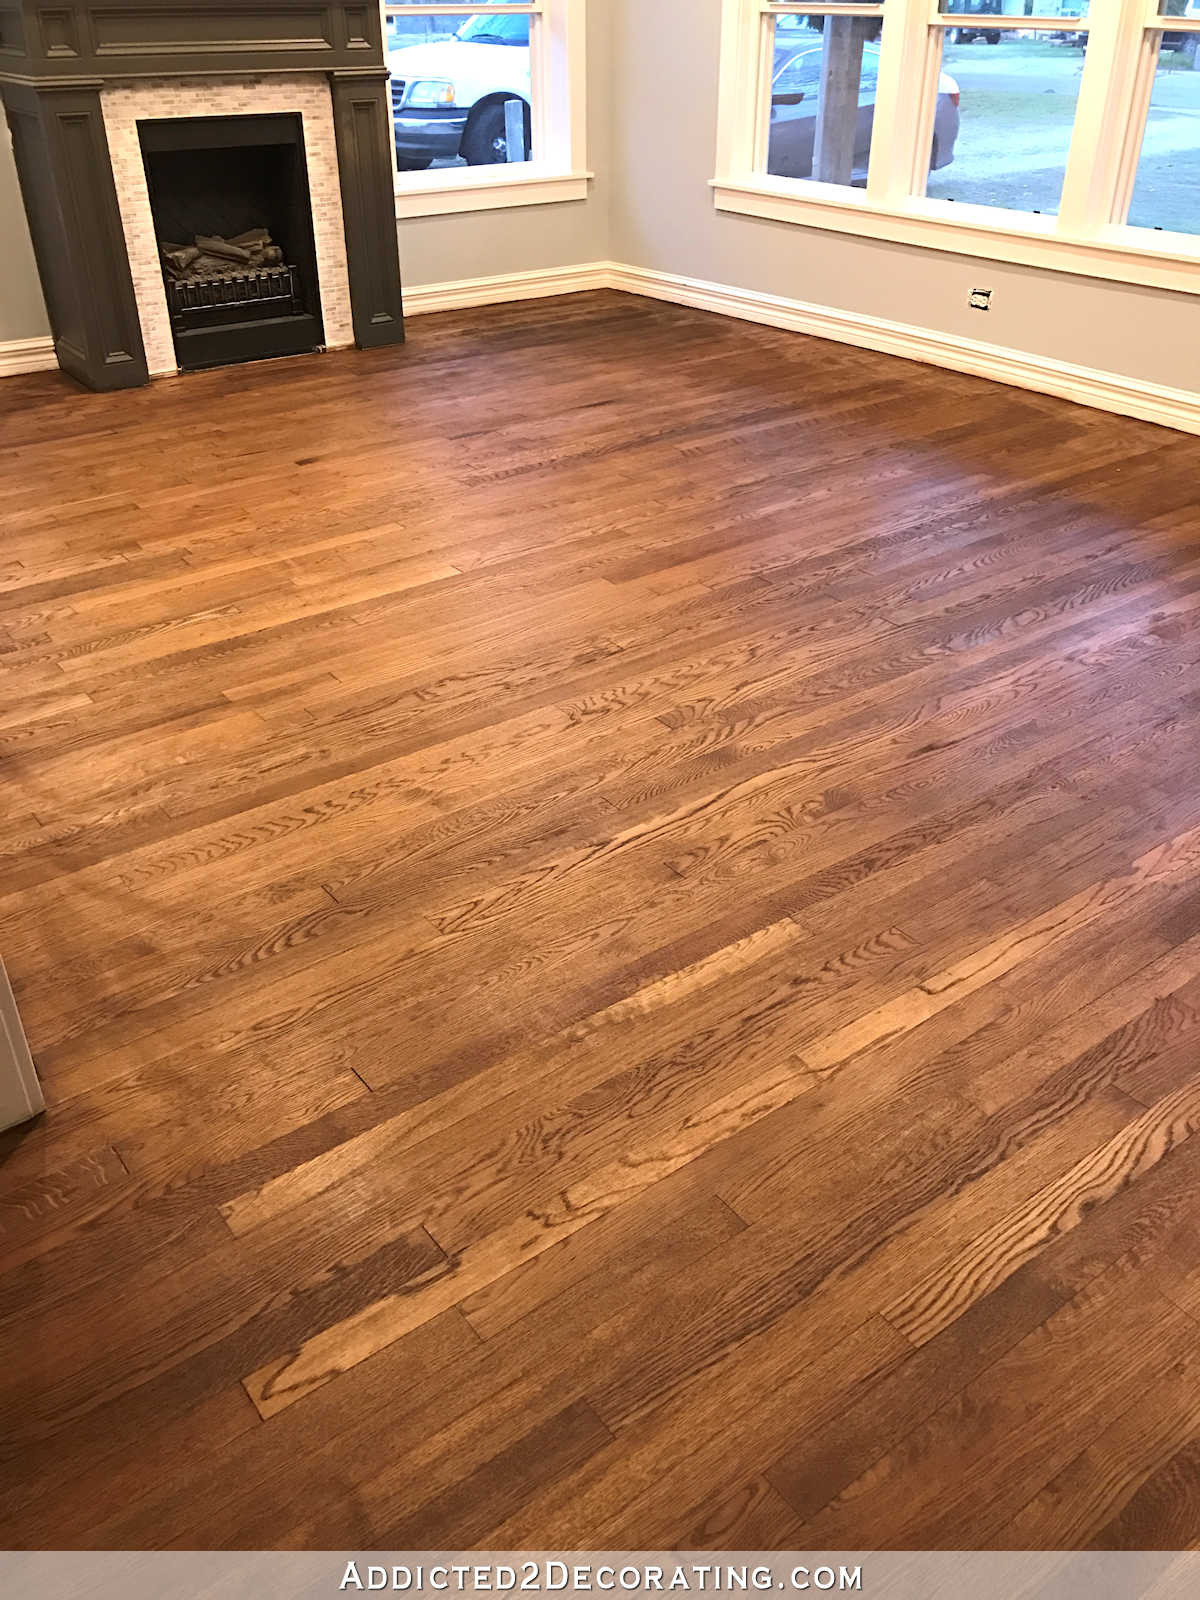 how to refinish my hardwood floors of adventures in staining my red oak hardwood floors products process inside staining red oak hardwood floors 8a living room and entryway